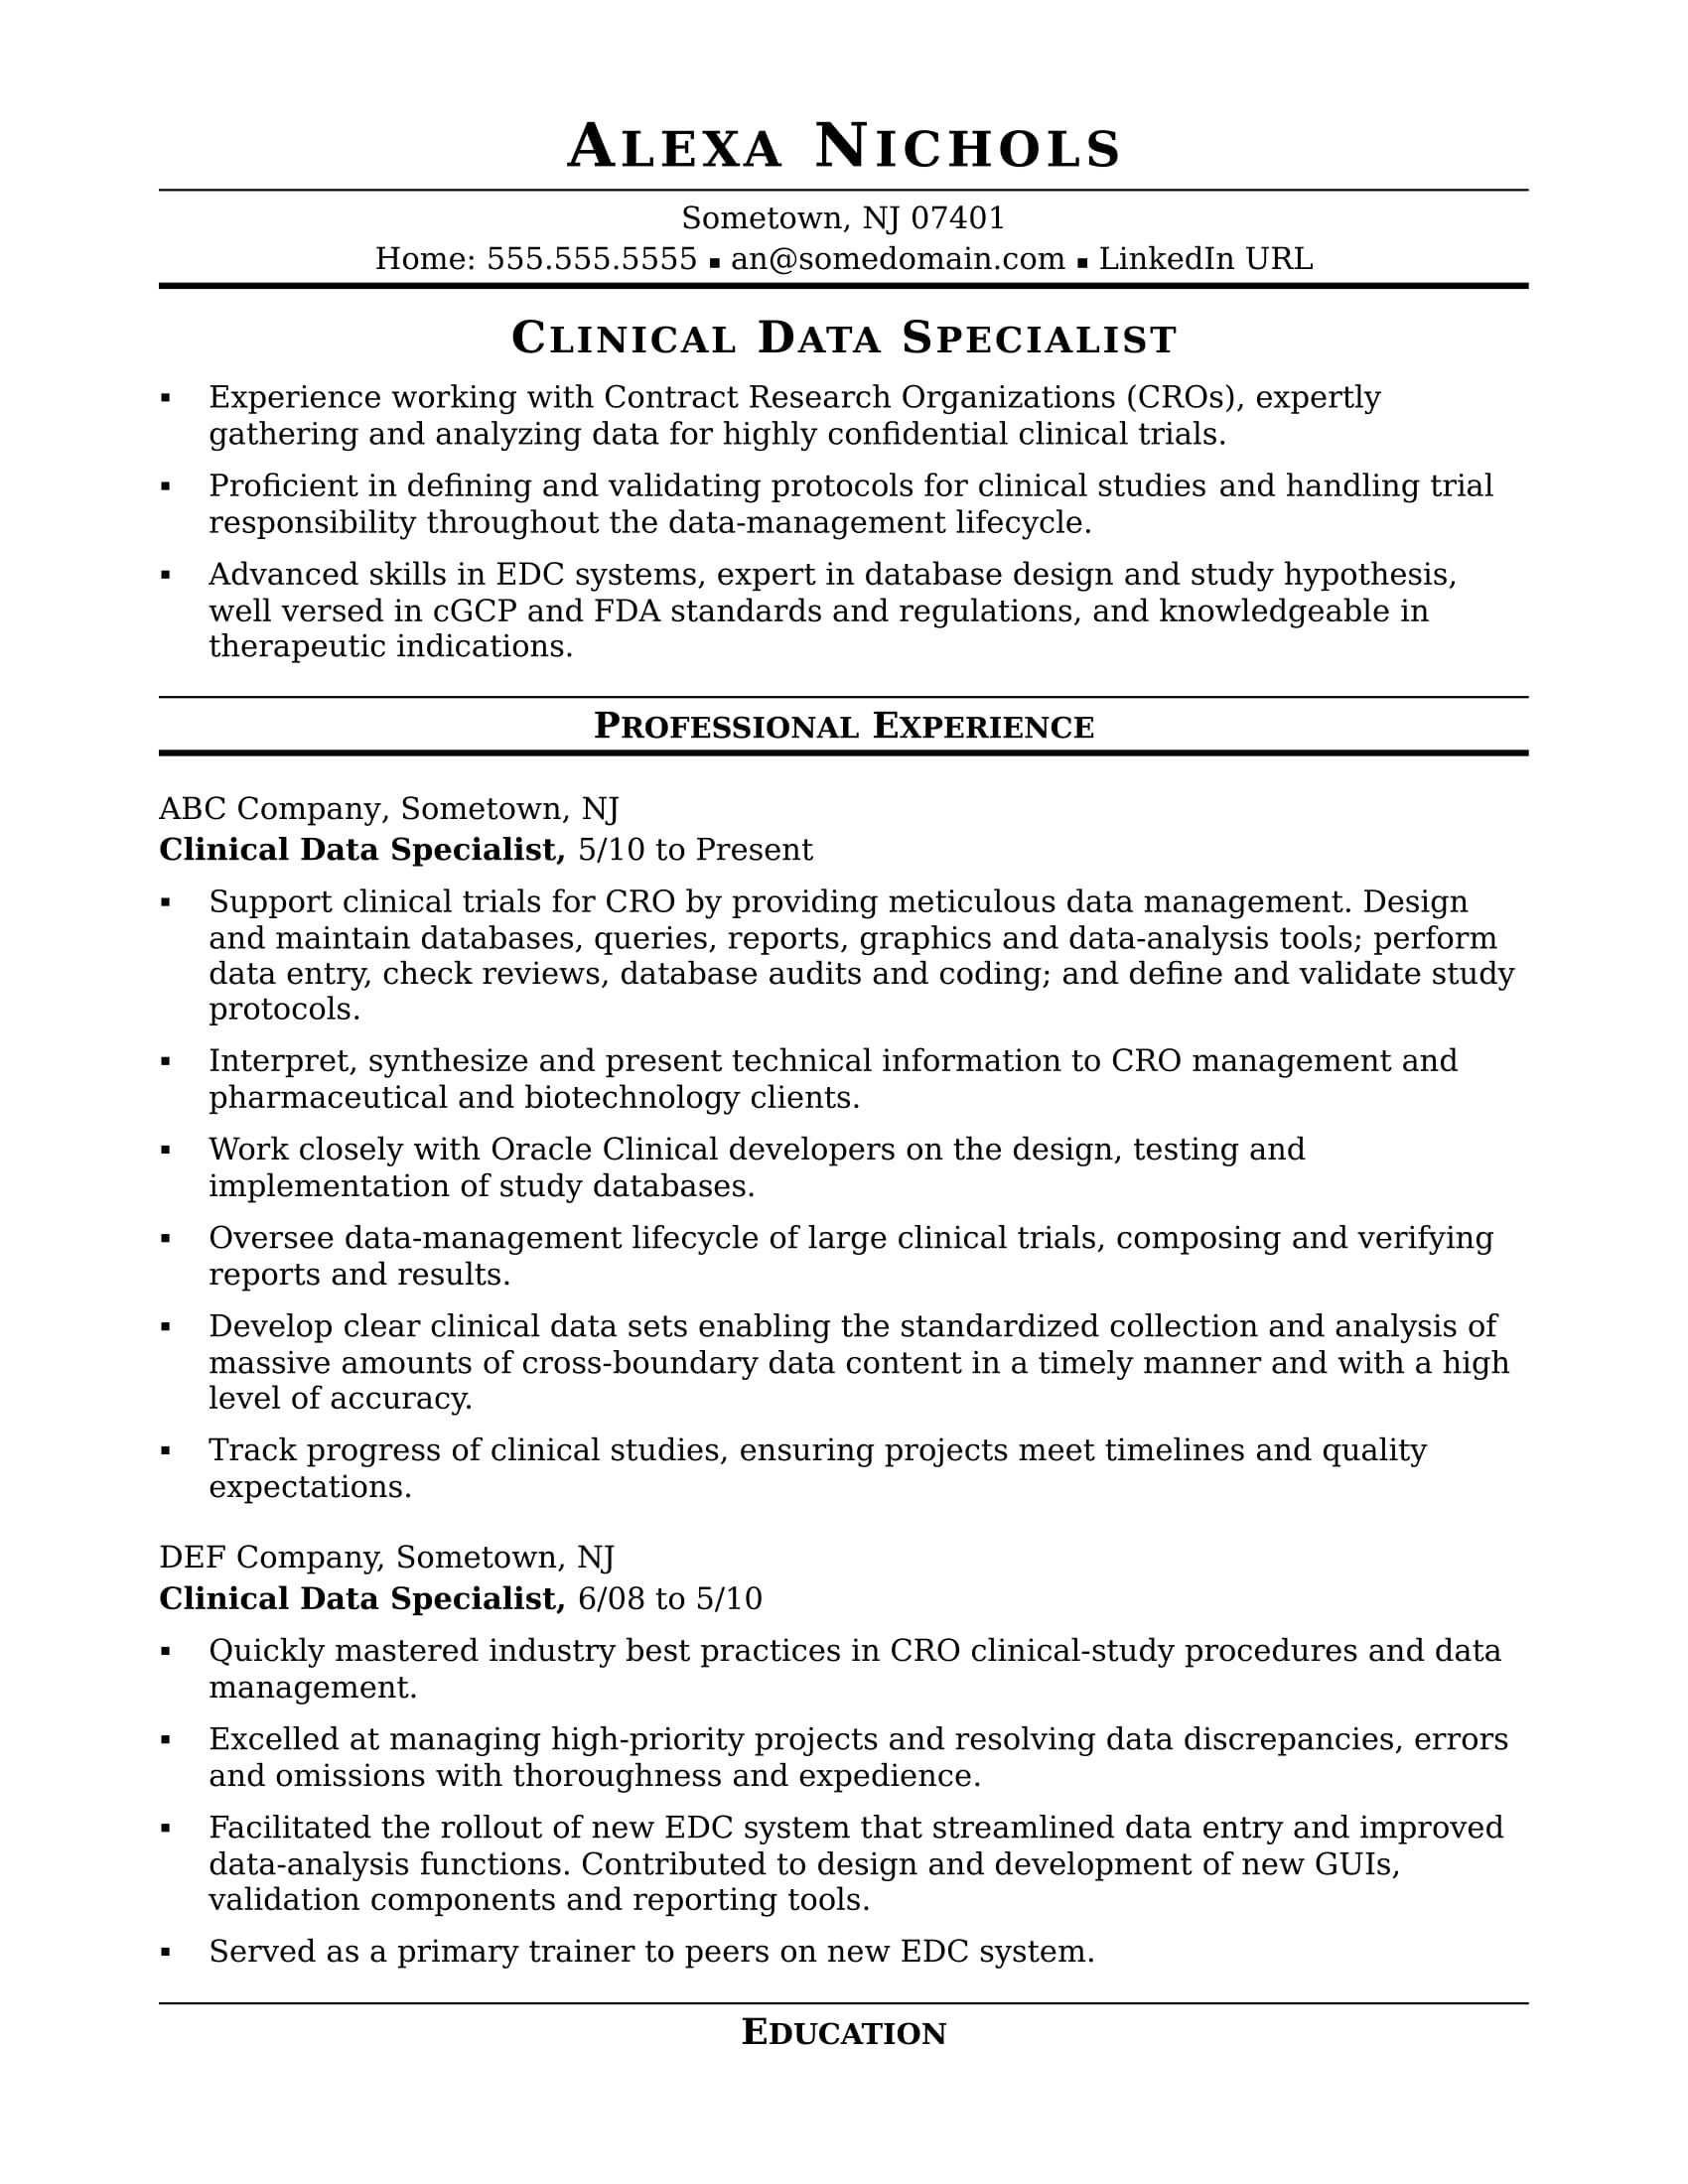 clinical data specialist resume sample